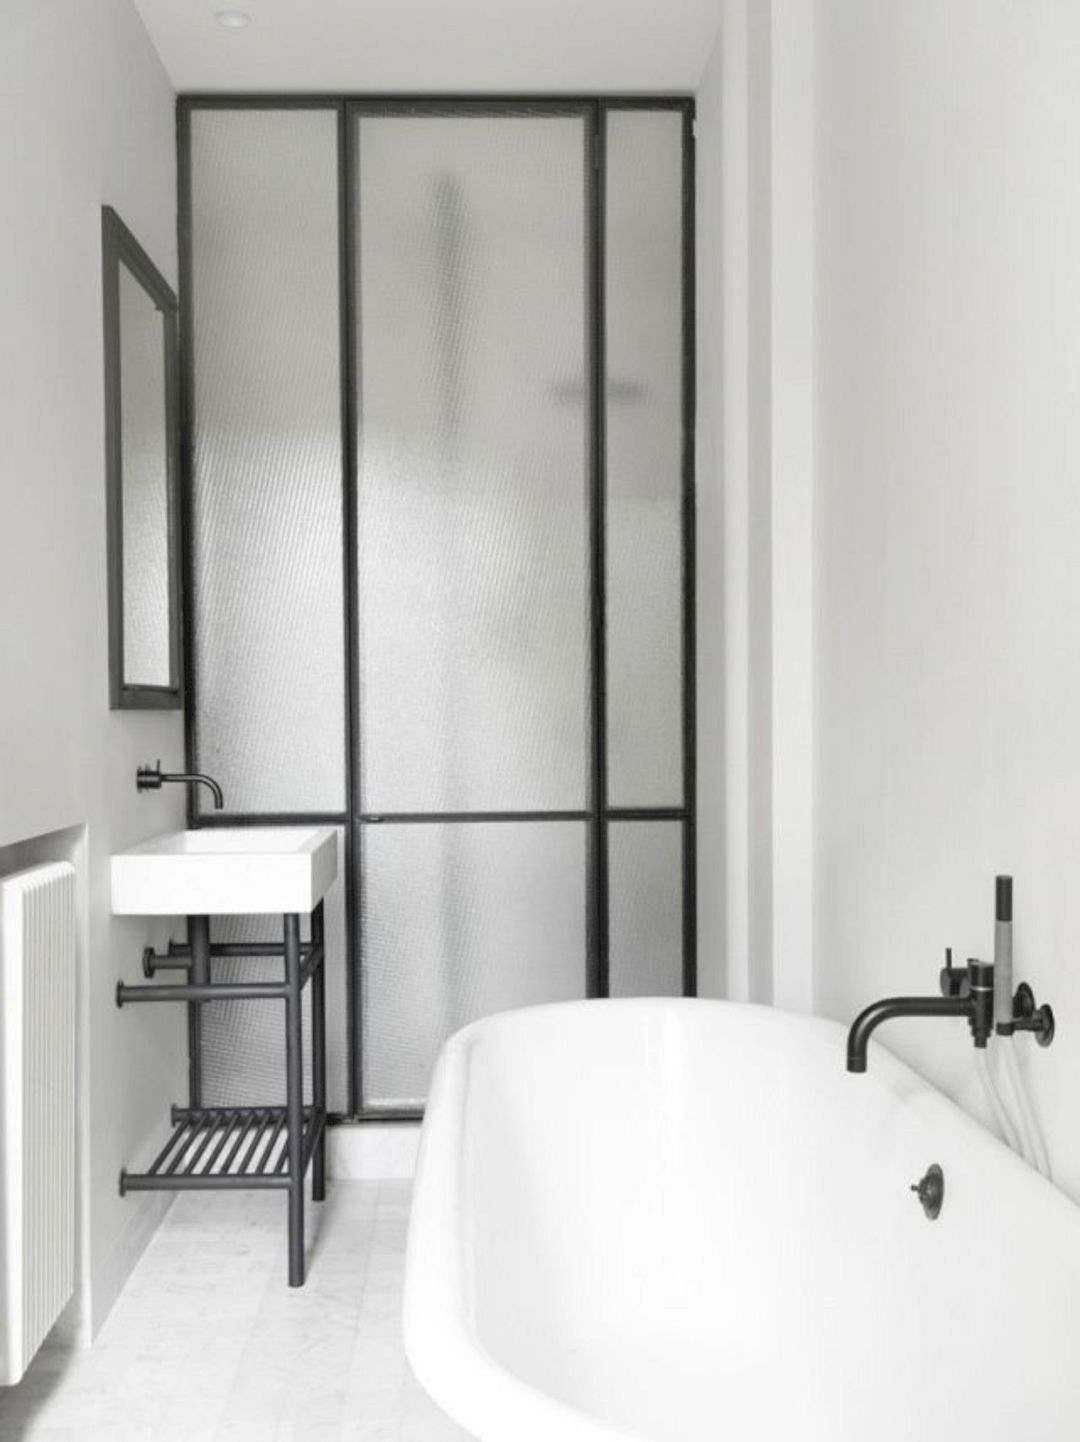 Best Small Bathroom Remodel: 111 Design Ideas | Small bathroom, Bath on updated wallpaper designs, updated small kitchens, updated master bedroom designs, updated shower designs, updated laundry room designs, updated office designs,